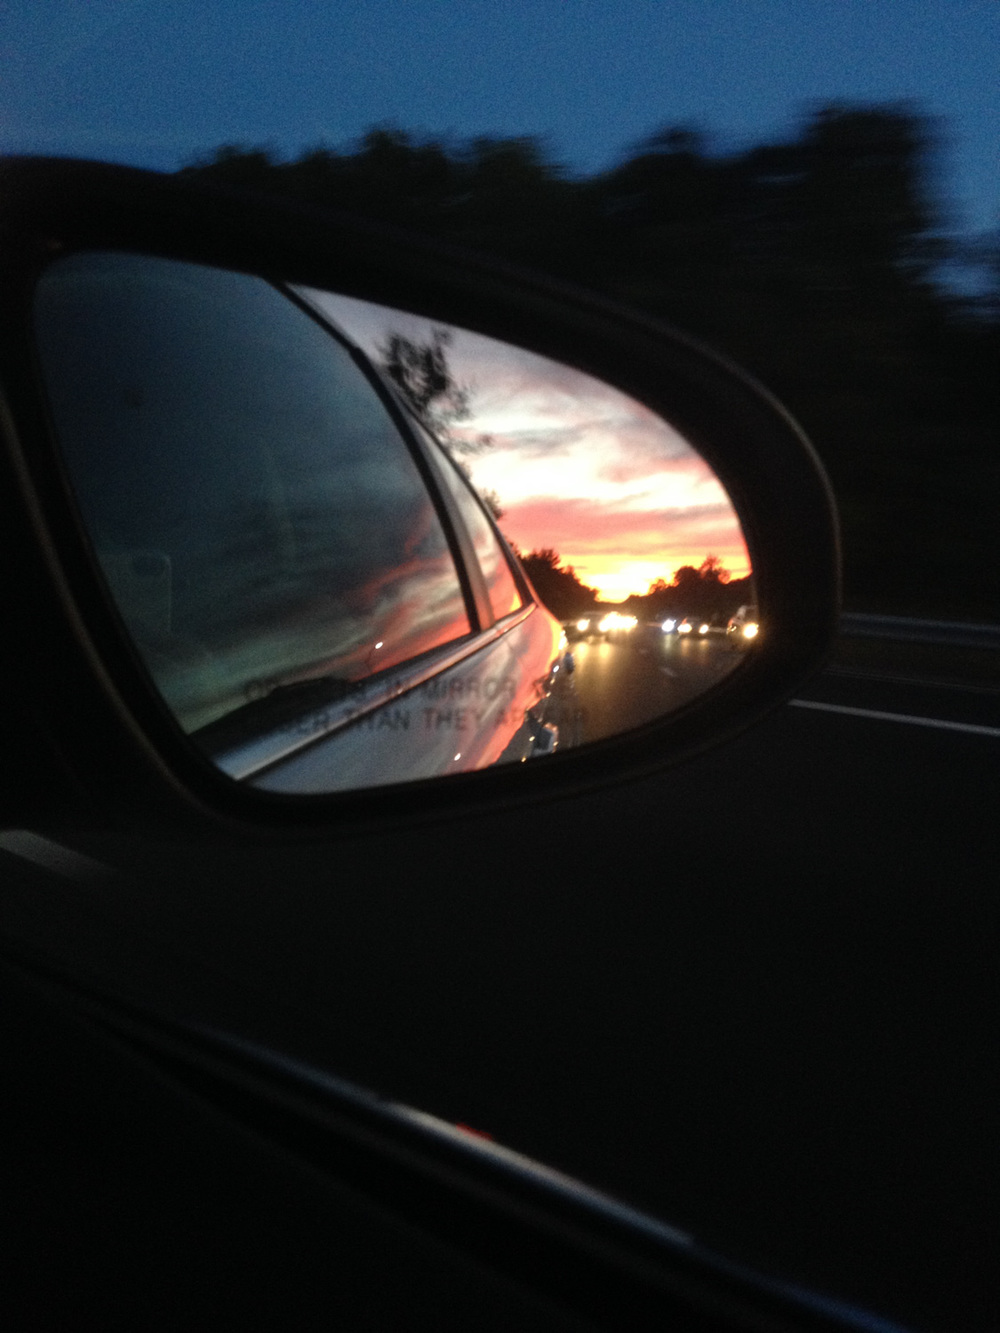 driving on up with Debbie, watching the sunset at our backs